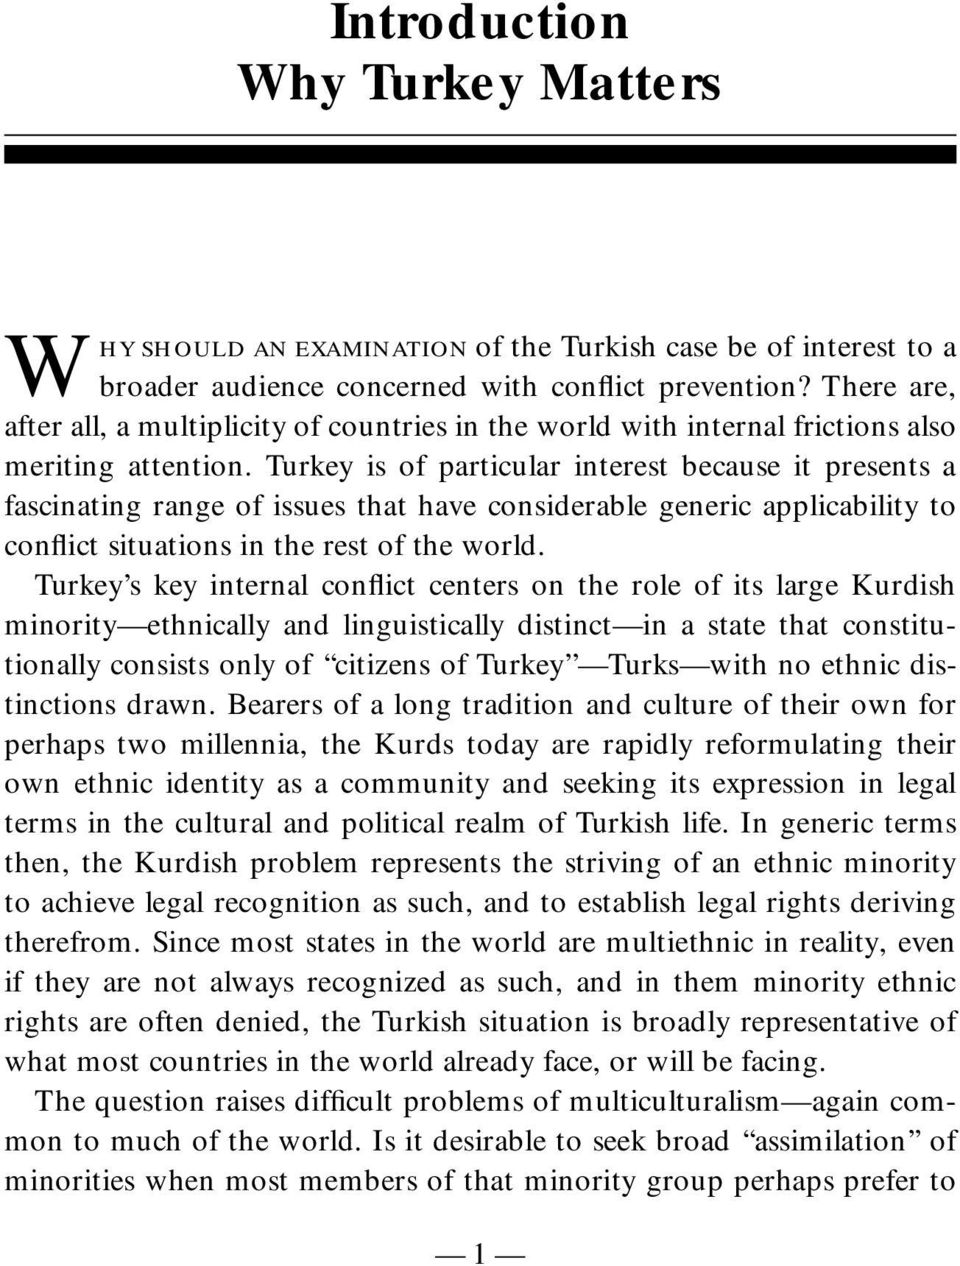 Turkey is of particular interest because it presents a fascinating range of issues that have considerable generic applicability to conflict situations in the rest of the world.